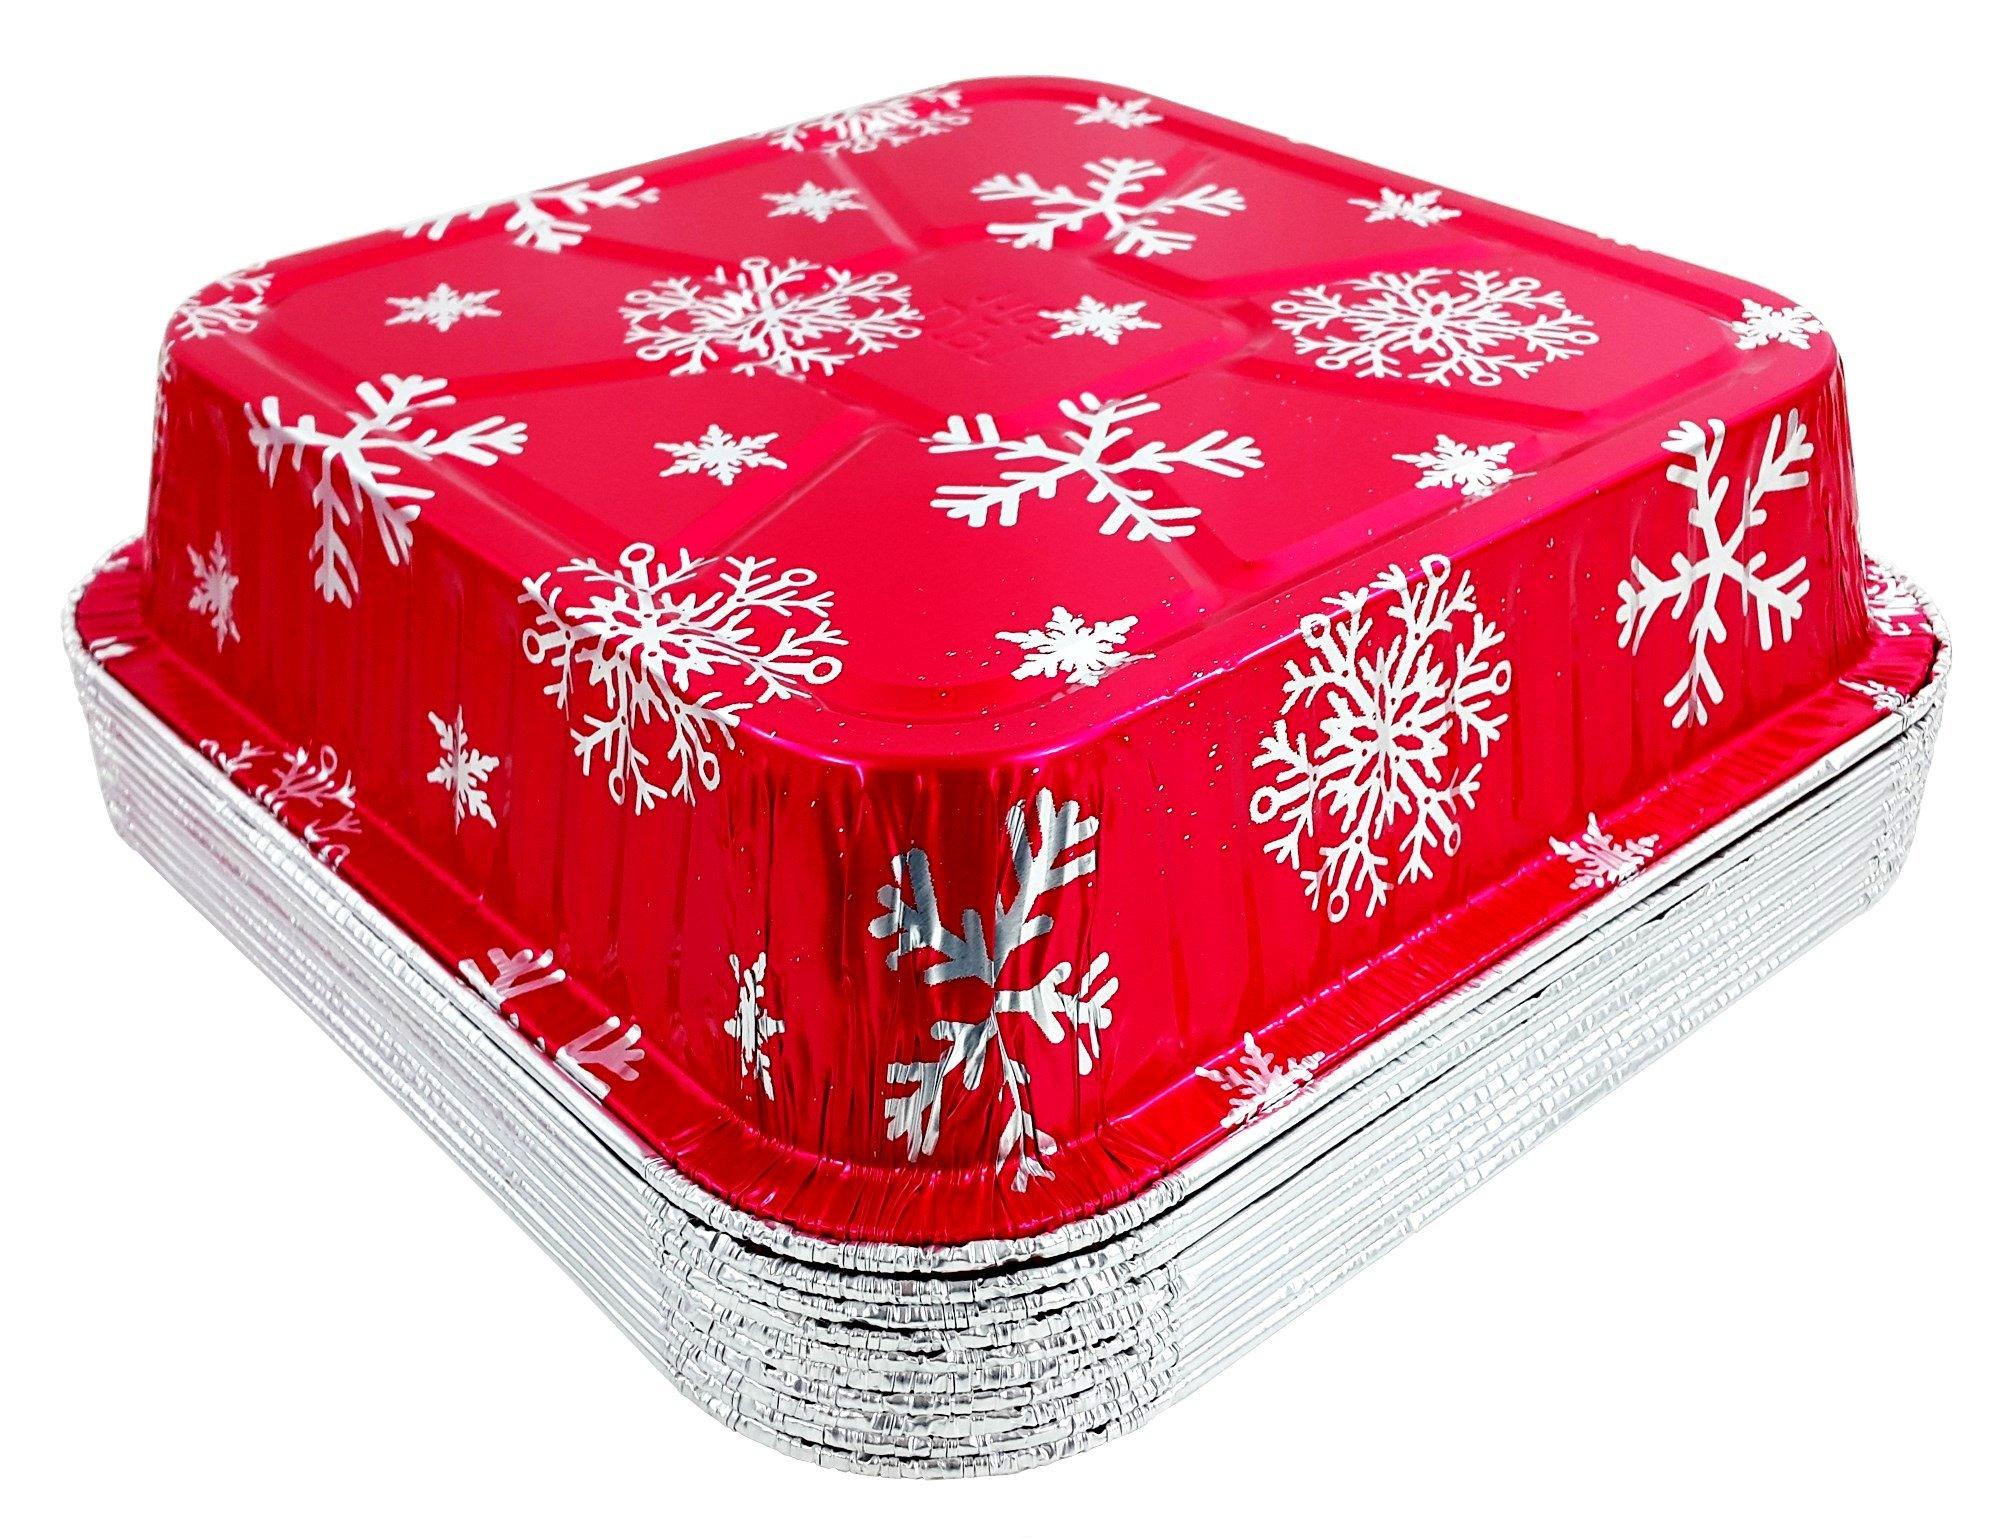 Pactogo Red Holiday Christmas Square Cake Aluminum Foil Pan w/Clear Dome Lid Disposable Baking Tins (Pack of 25 Sets) by PACTOGO (Image #8)